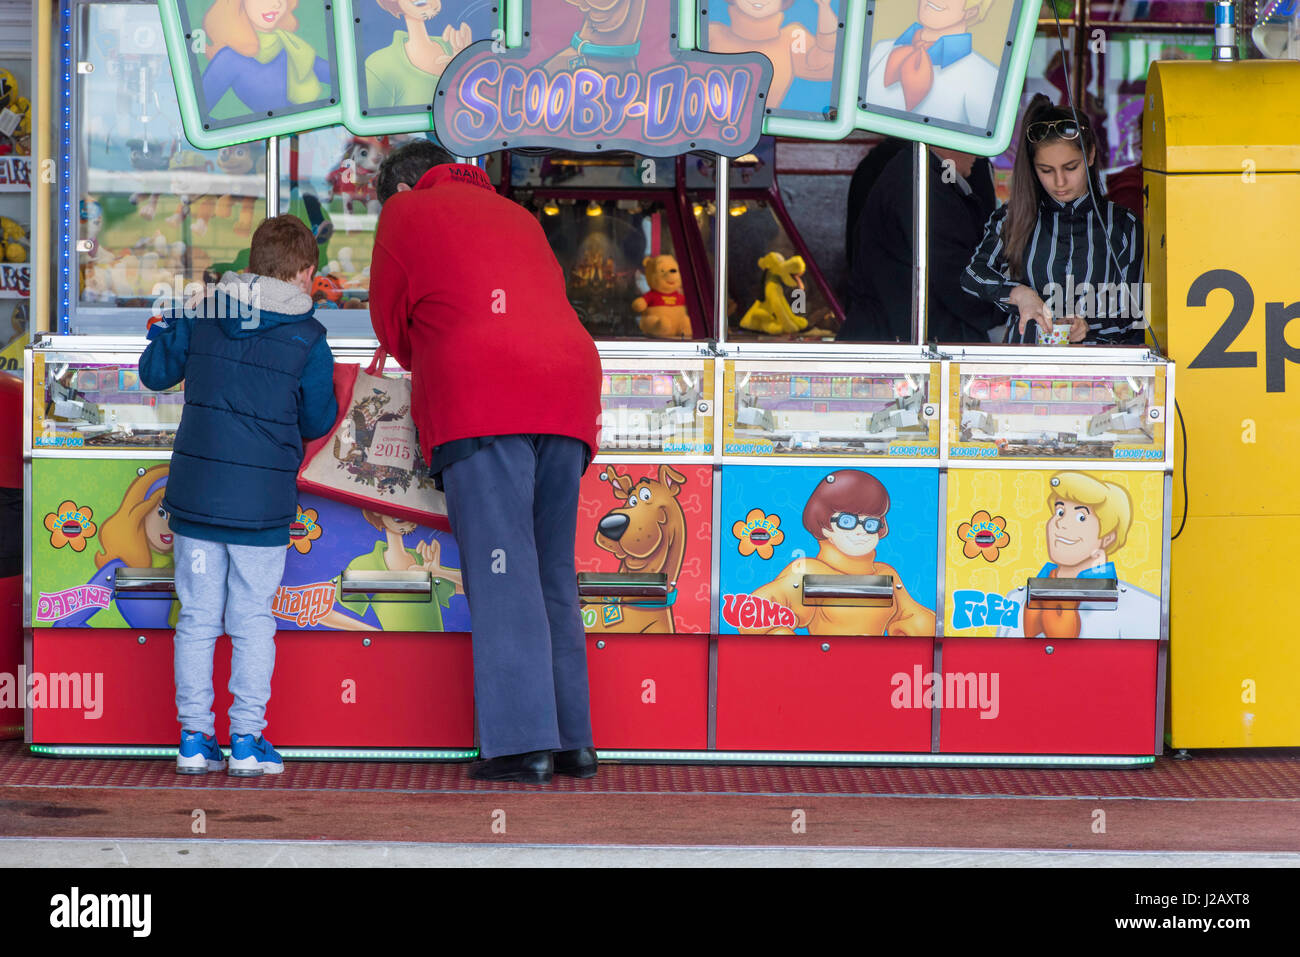 People paying an a two pence'Scooby-do' slot machine in an amusement arcade. - Stock Image